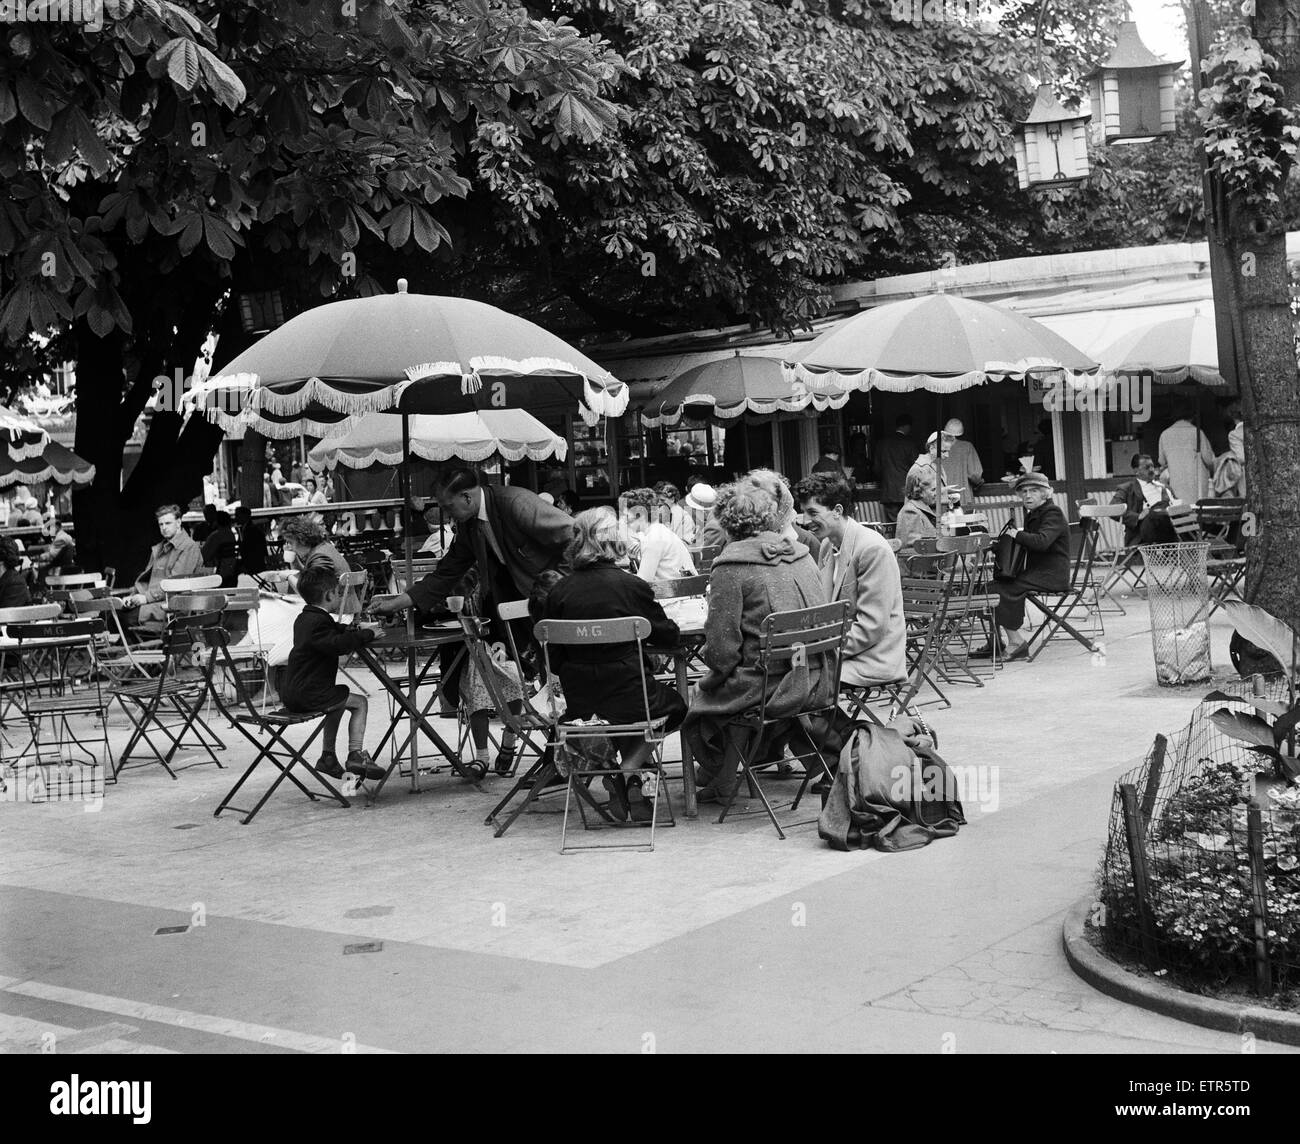 People enjoying refreshments at a outdoor cafe, Southport, Merseyside. 5th August 1959. - Stock Image